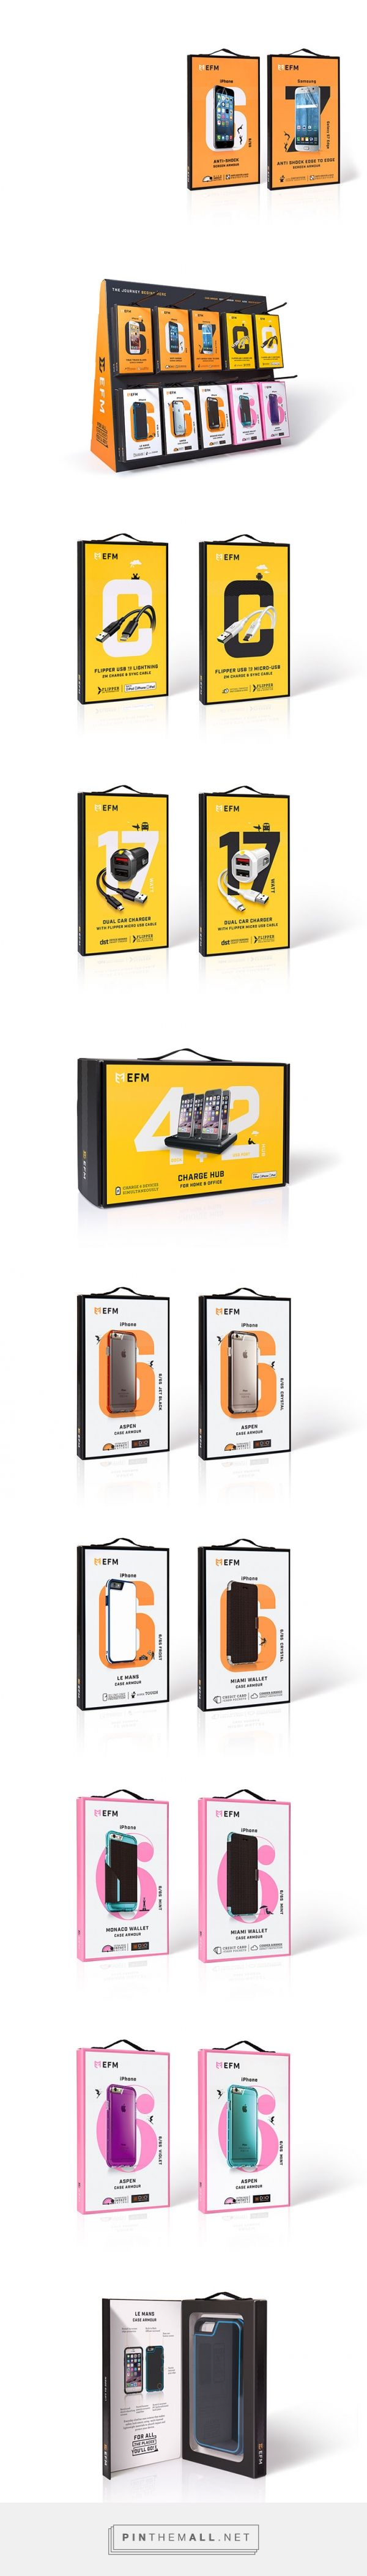 iPhone and Samsung Phone Accessories Packaging Designs | Dessein - created via https://pinthemall.net